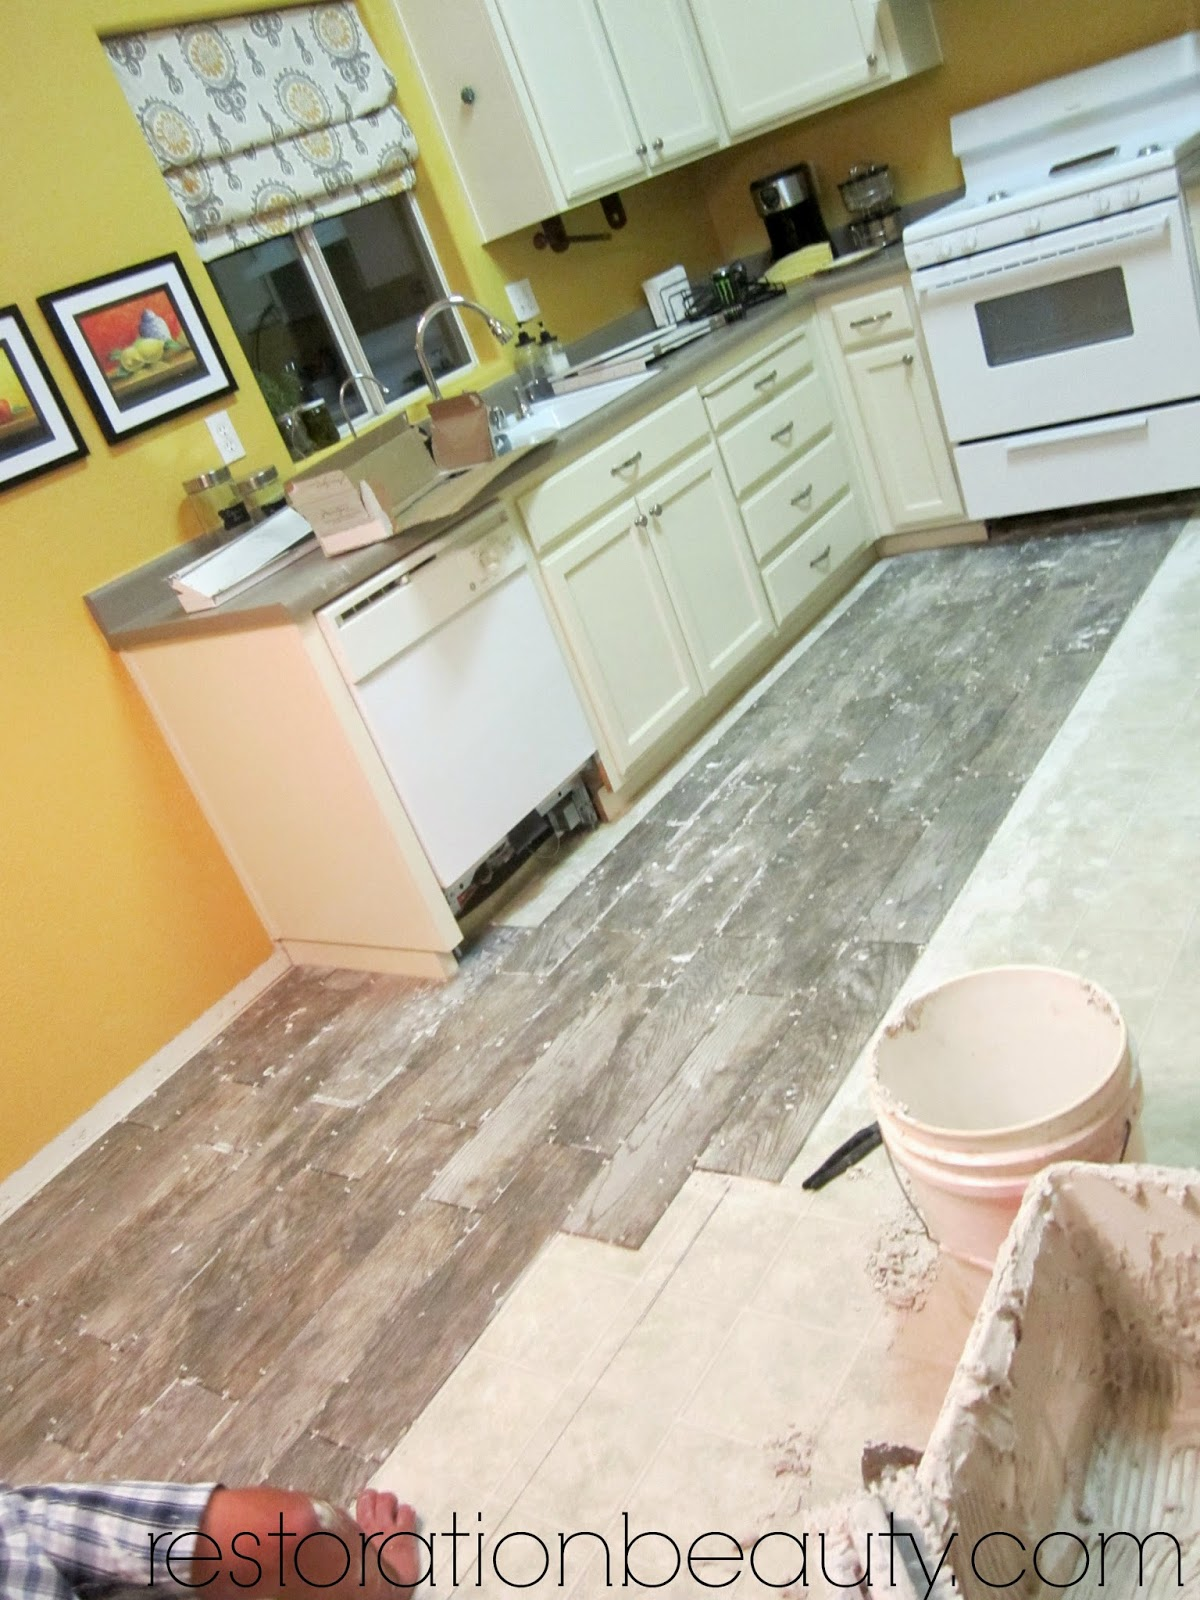 Restoration beauty faux wood tile flooring in the kitchen we went with faux wood tile since its more durable and budget friendly and honestly you cant even tell that its tile since the grout color blends in dailygadgetfo Choice Image